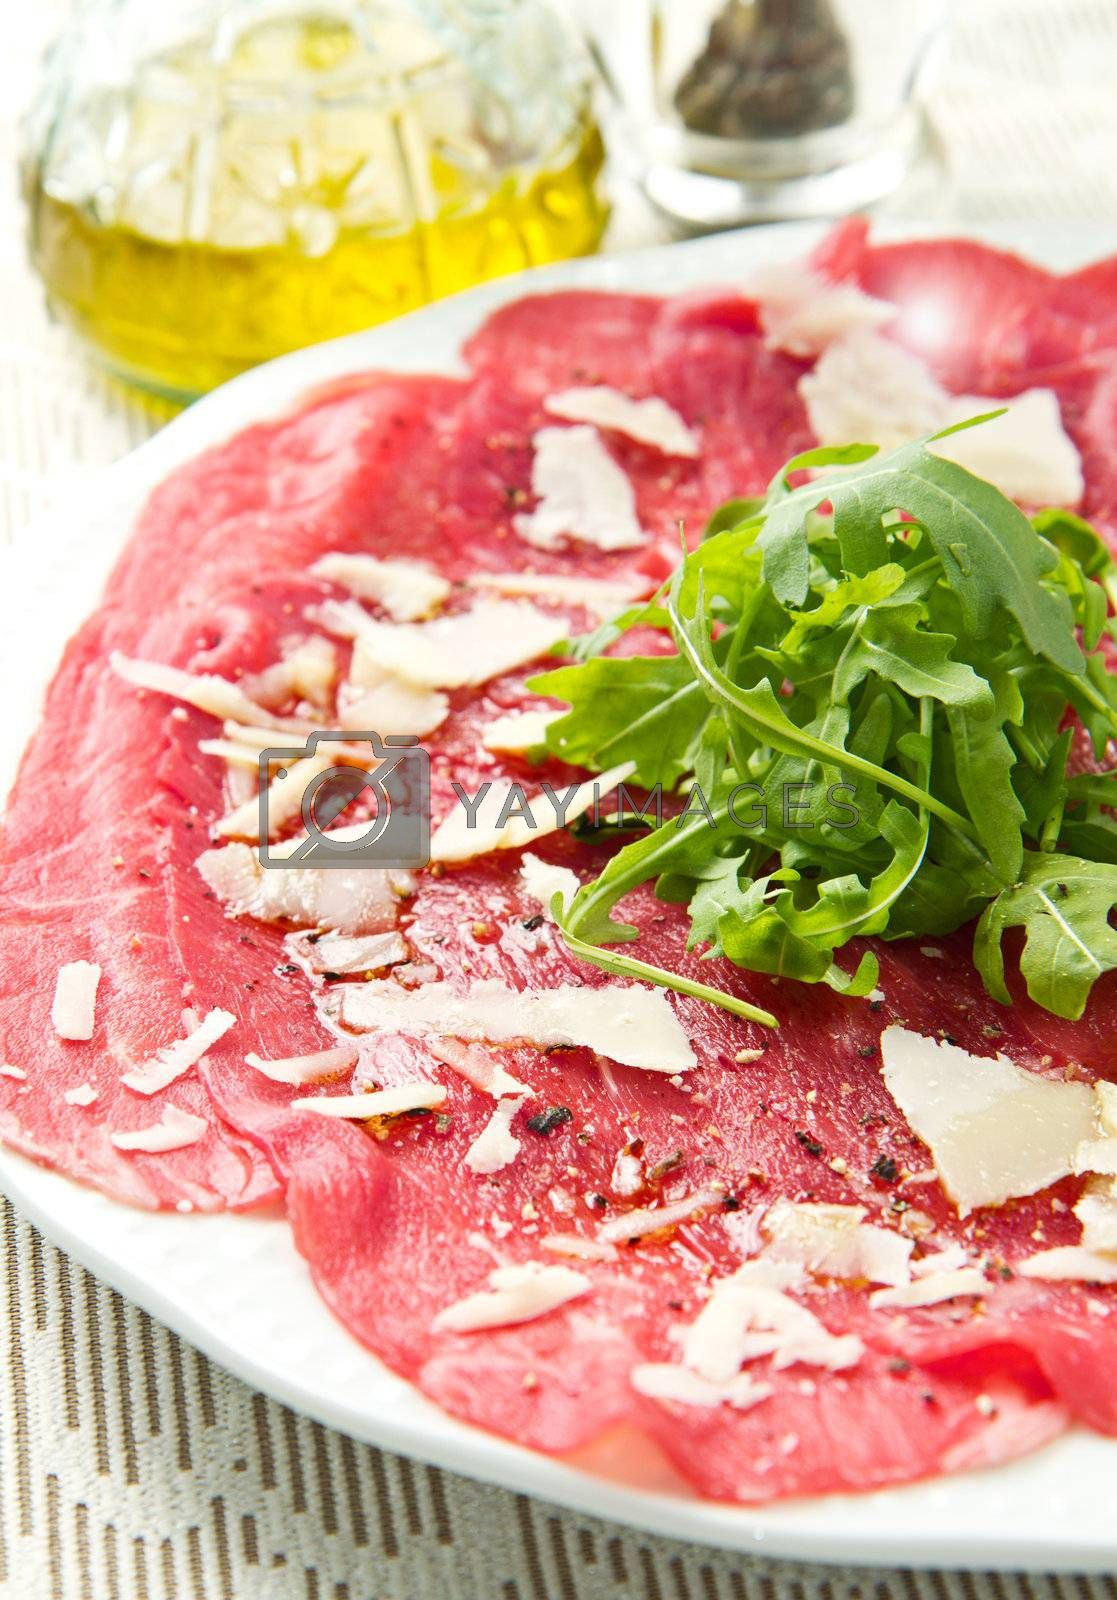 carpaccio of beef on arugula  by lsantilli